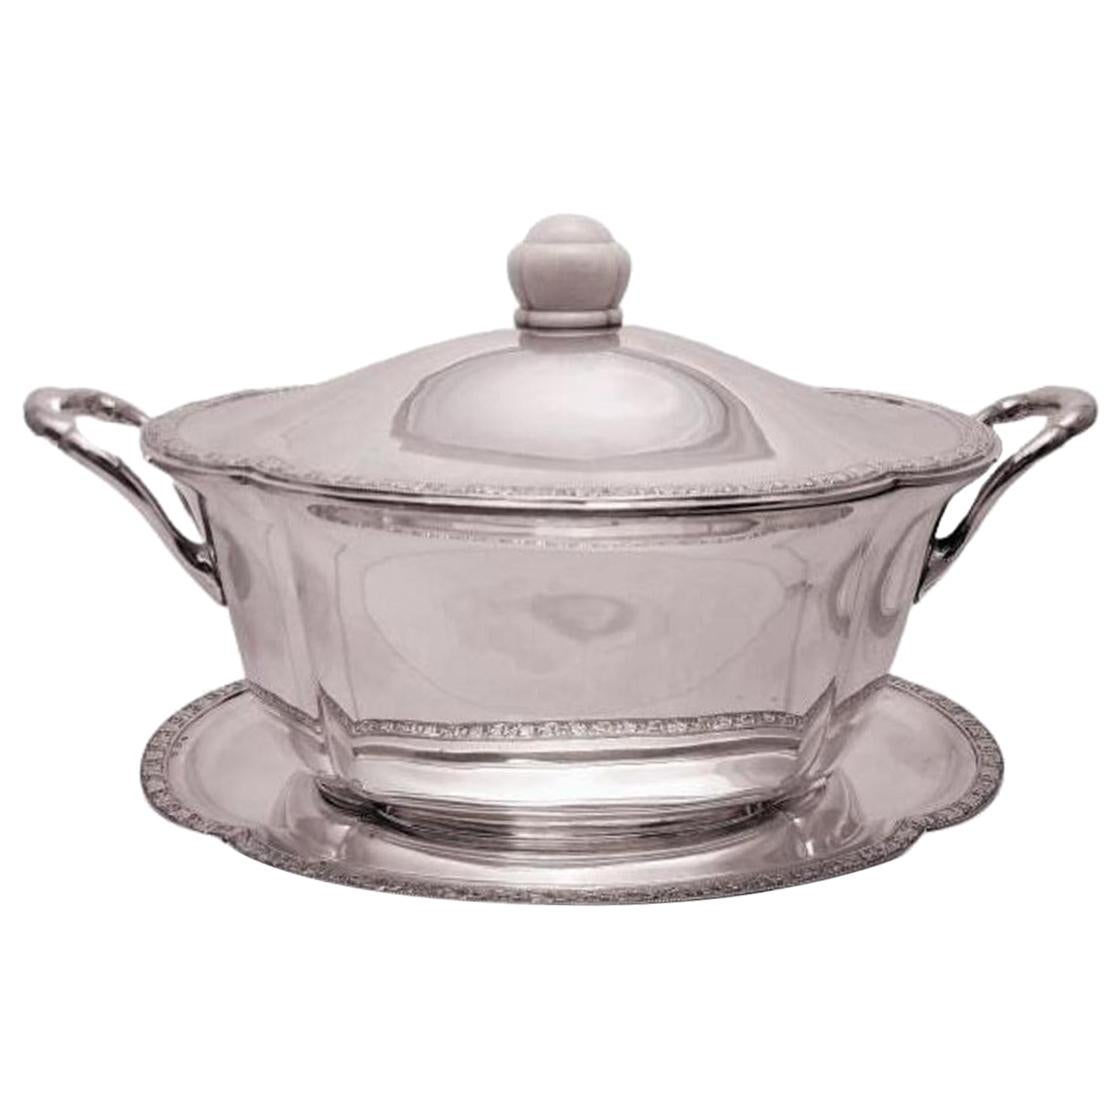 Austrian Continental Silver Tureen Covered Dish with Matching Tray Jugendstil